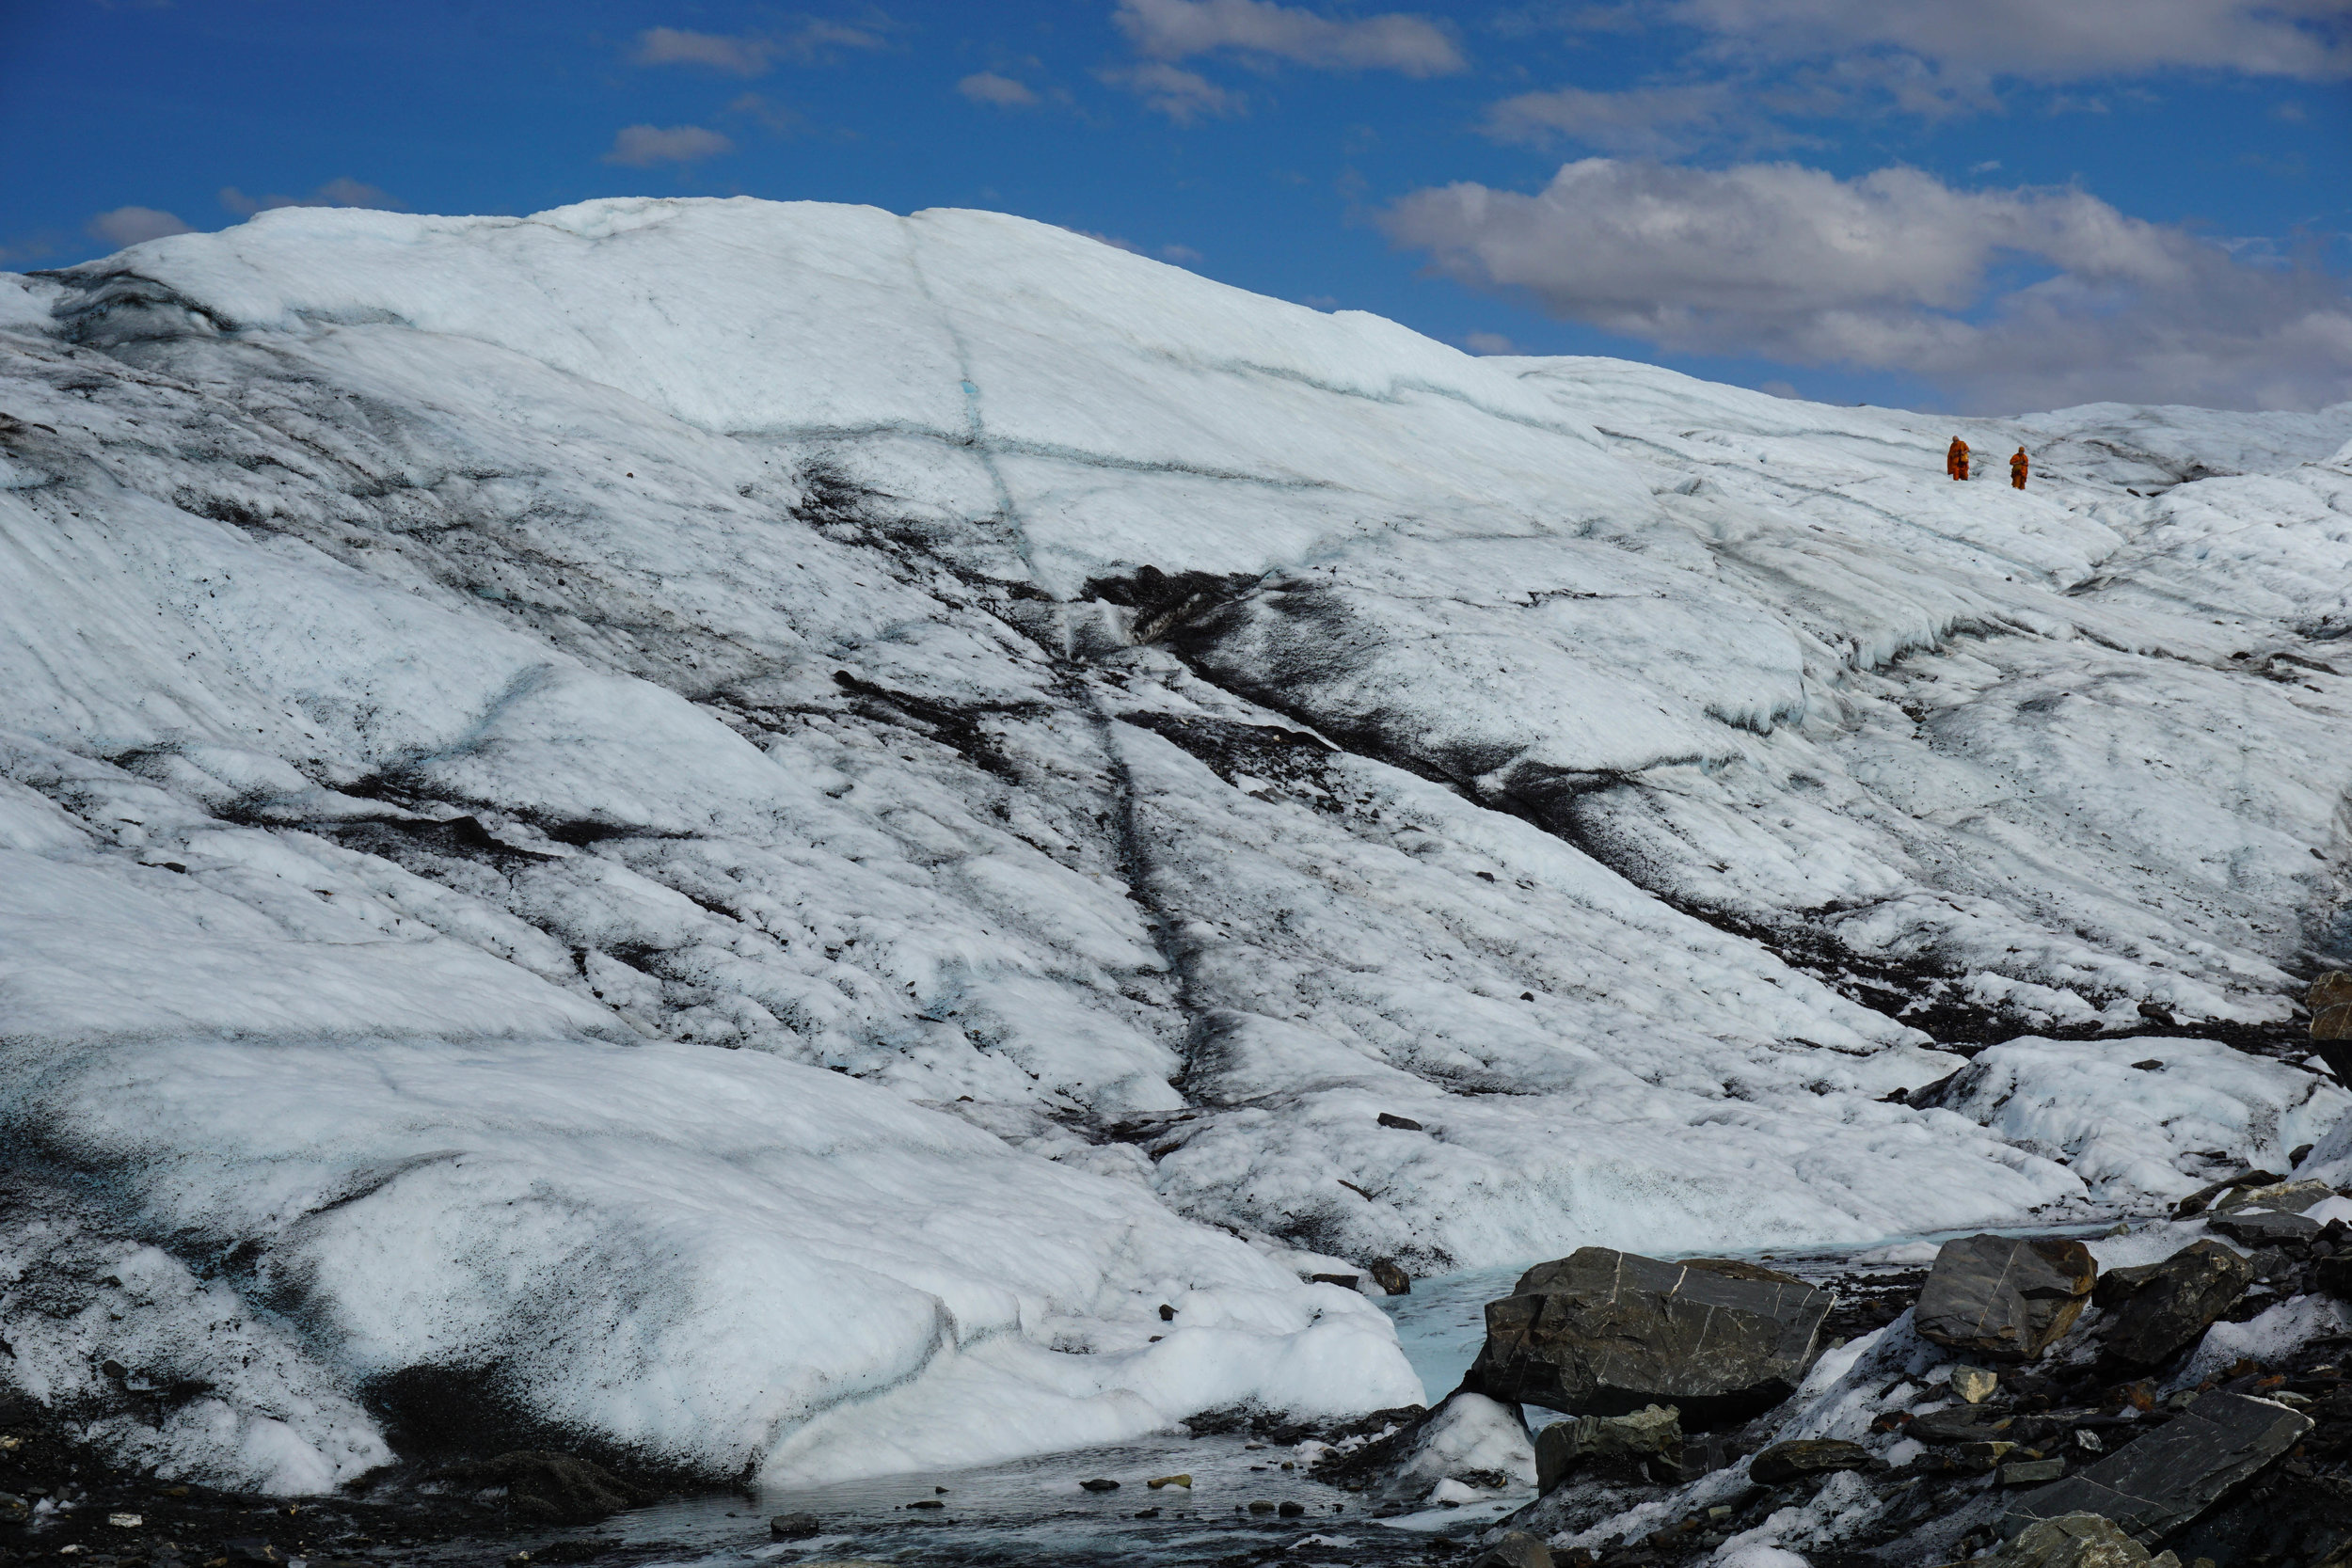 Two Thai monks are navigating the massive Matanuska Glacier. I stopped later on to get a photo with them.